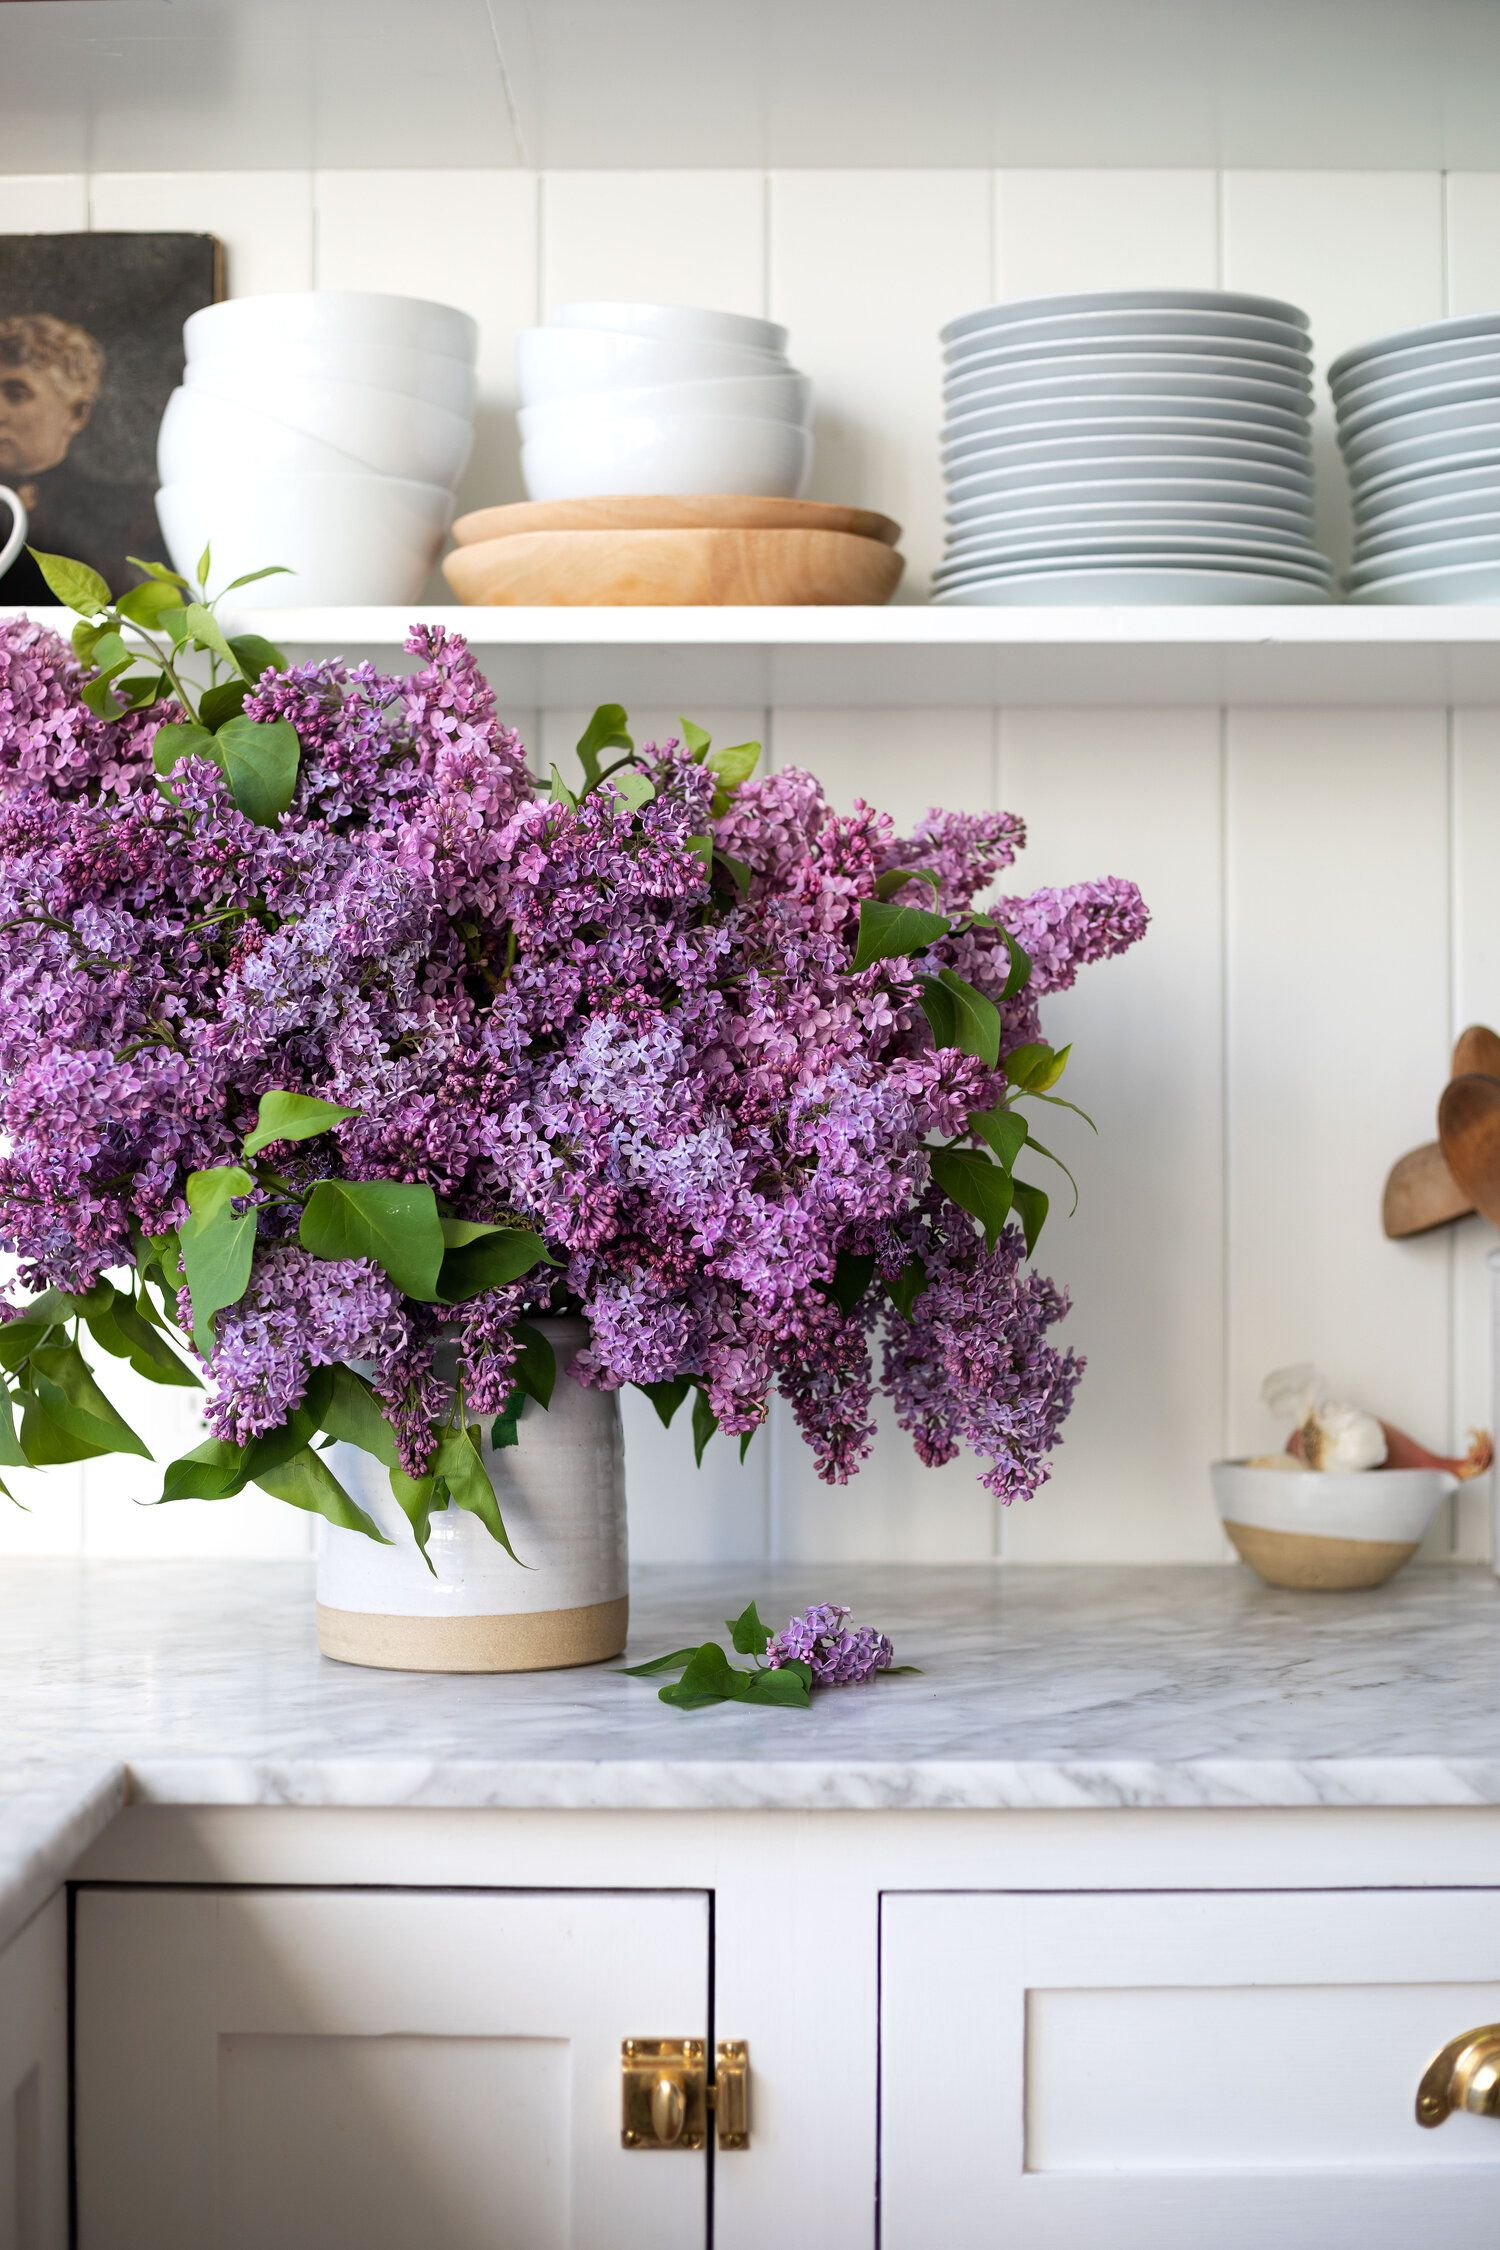 How to Arrange an Overflowing Bouquet of Lilacs in a Crock & Keep Them From Wilting — The Grit and P